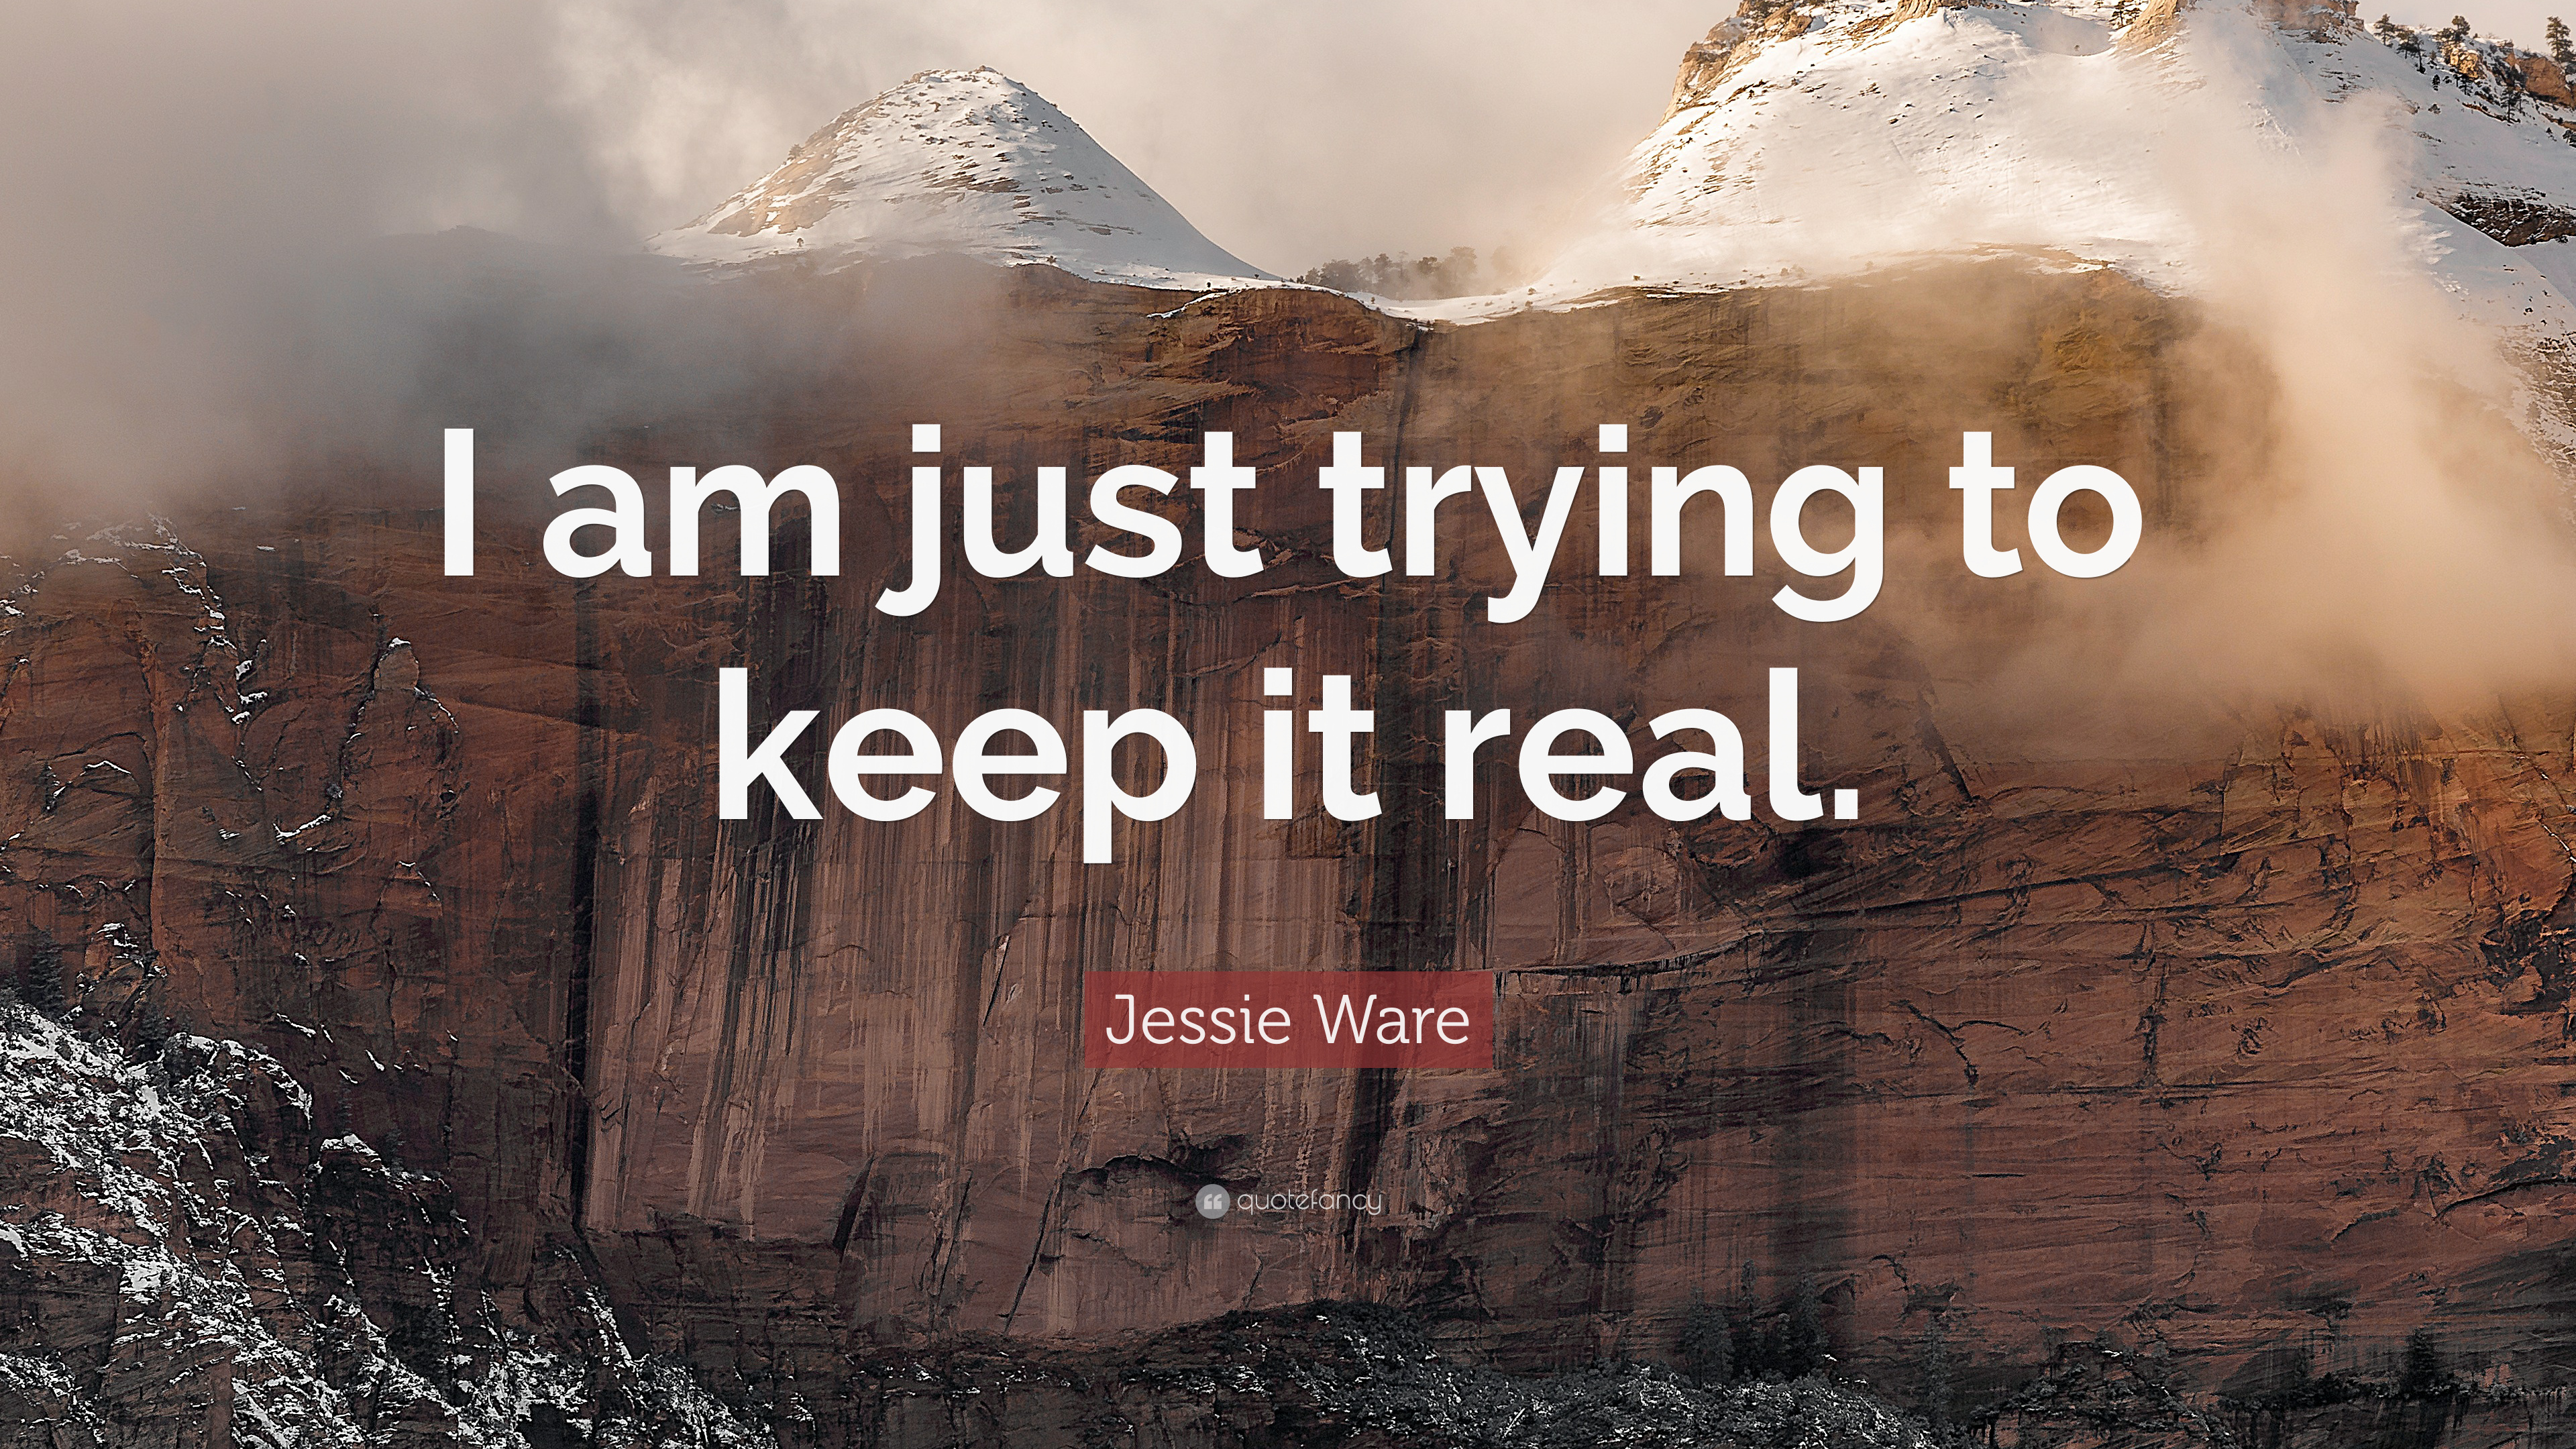 Jessie Ware Quotes 28 Wallpapers Quotefancy